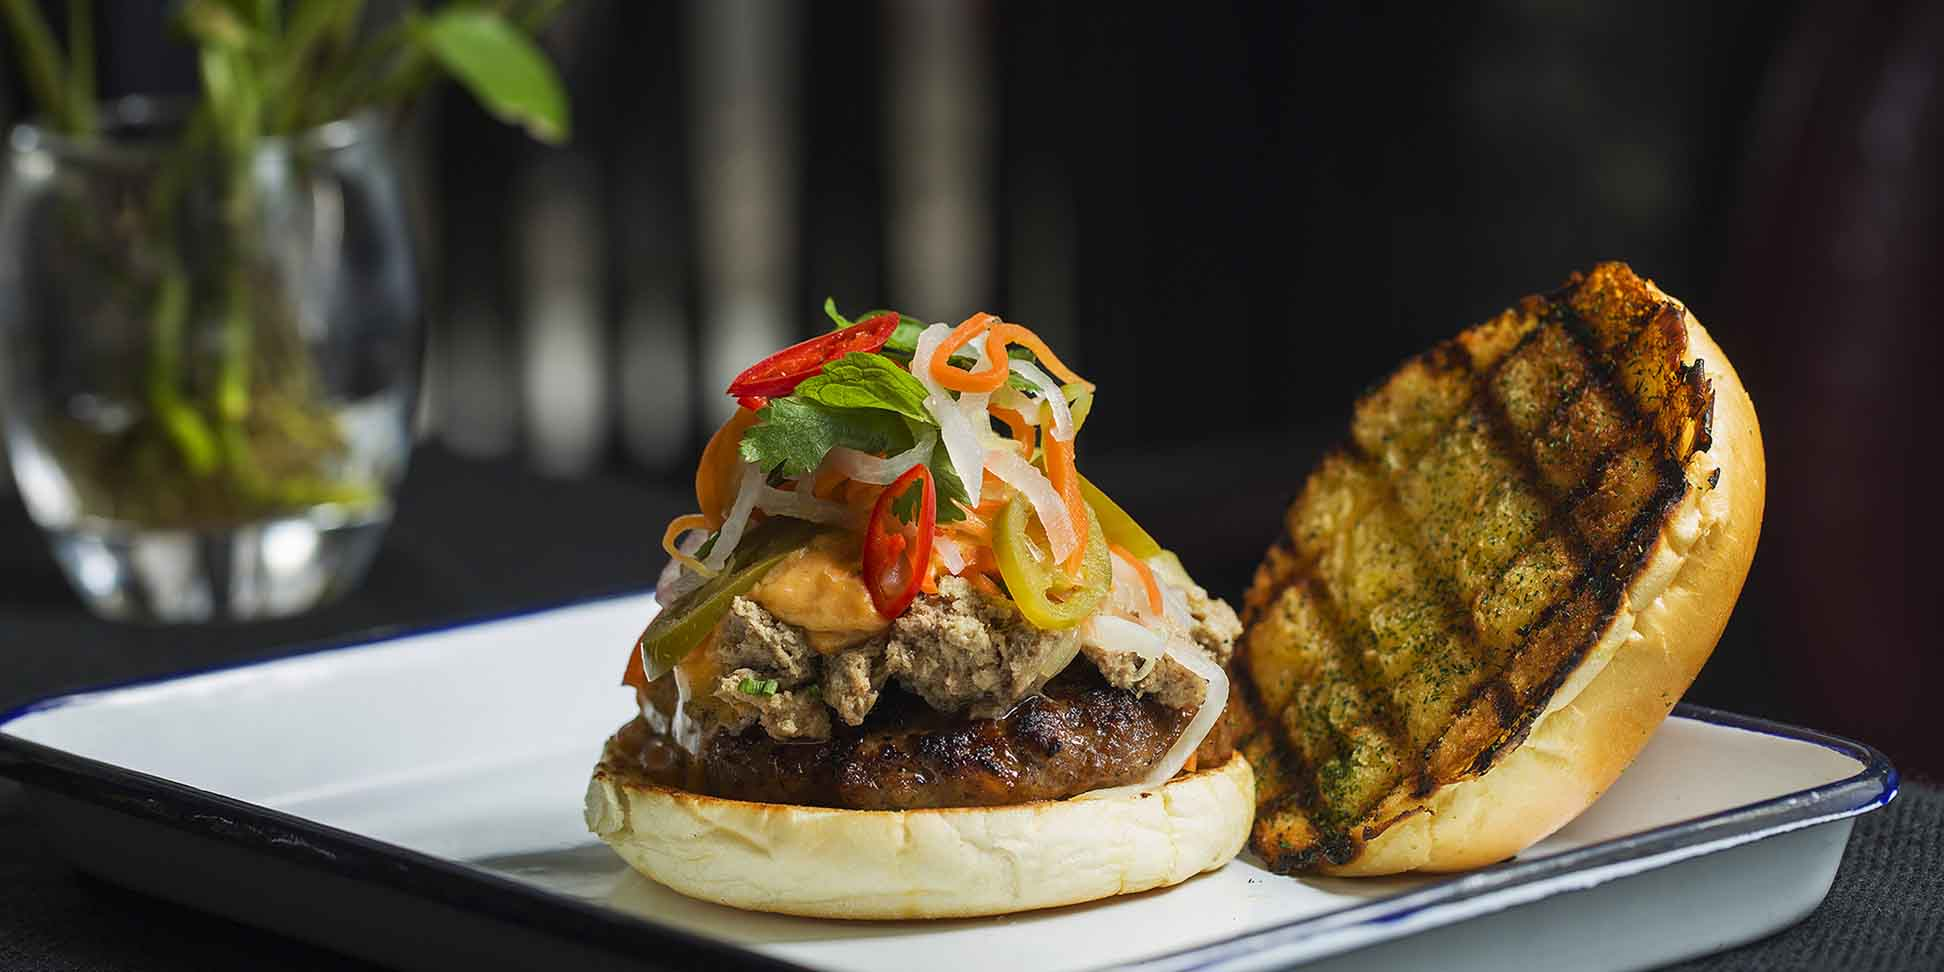 Burger of The Bull and Claw located in Xuhui, Shanghai